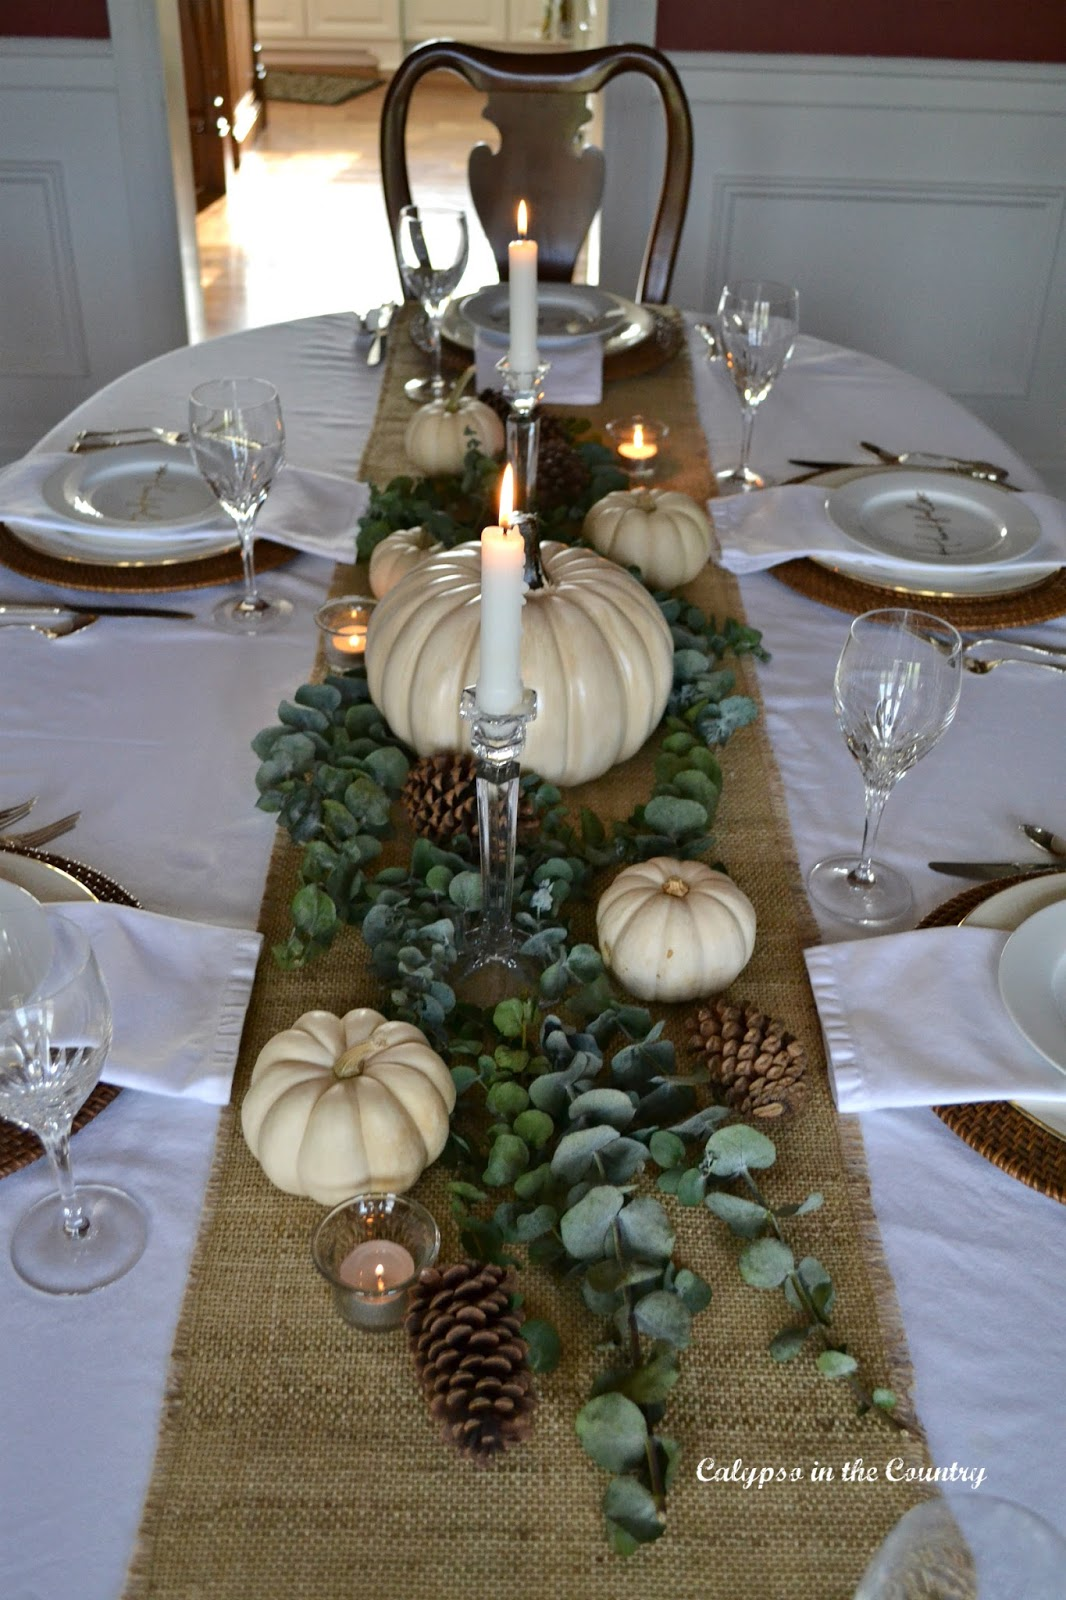 Table set with Burlap Runner and White Pumpkins